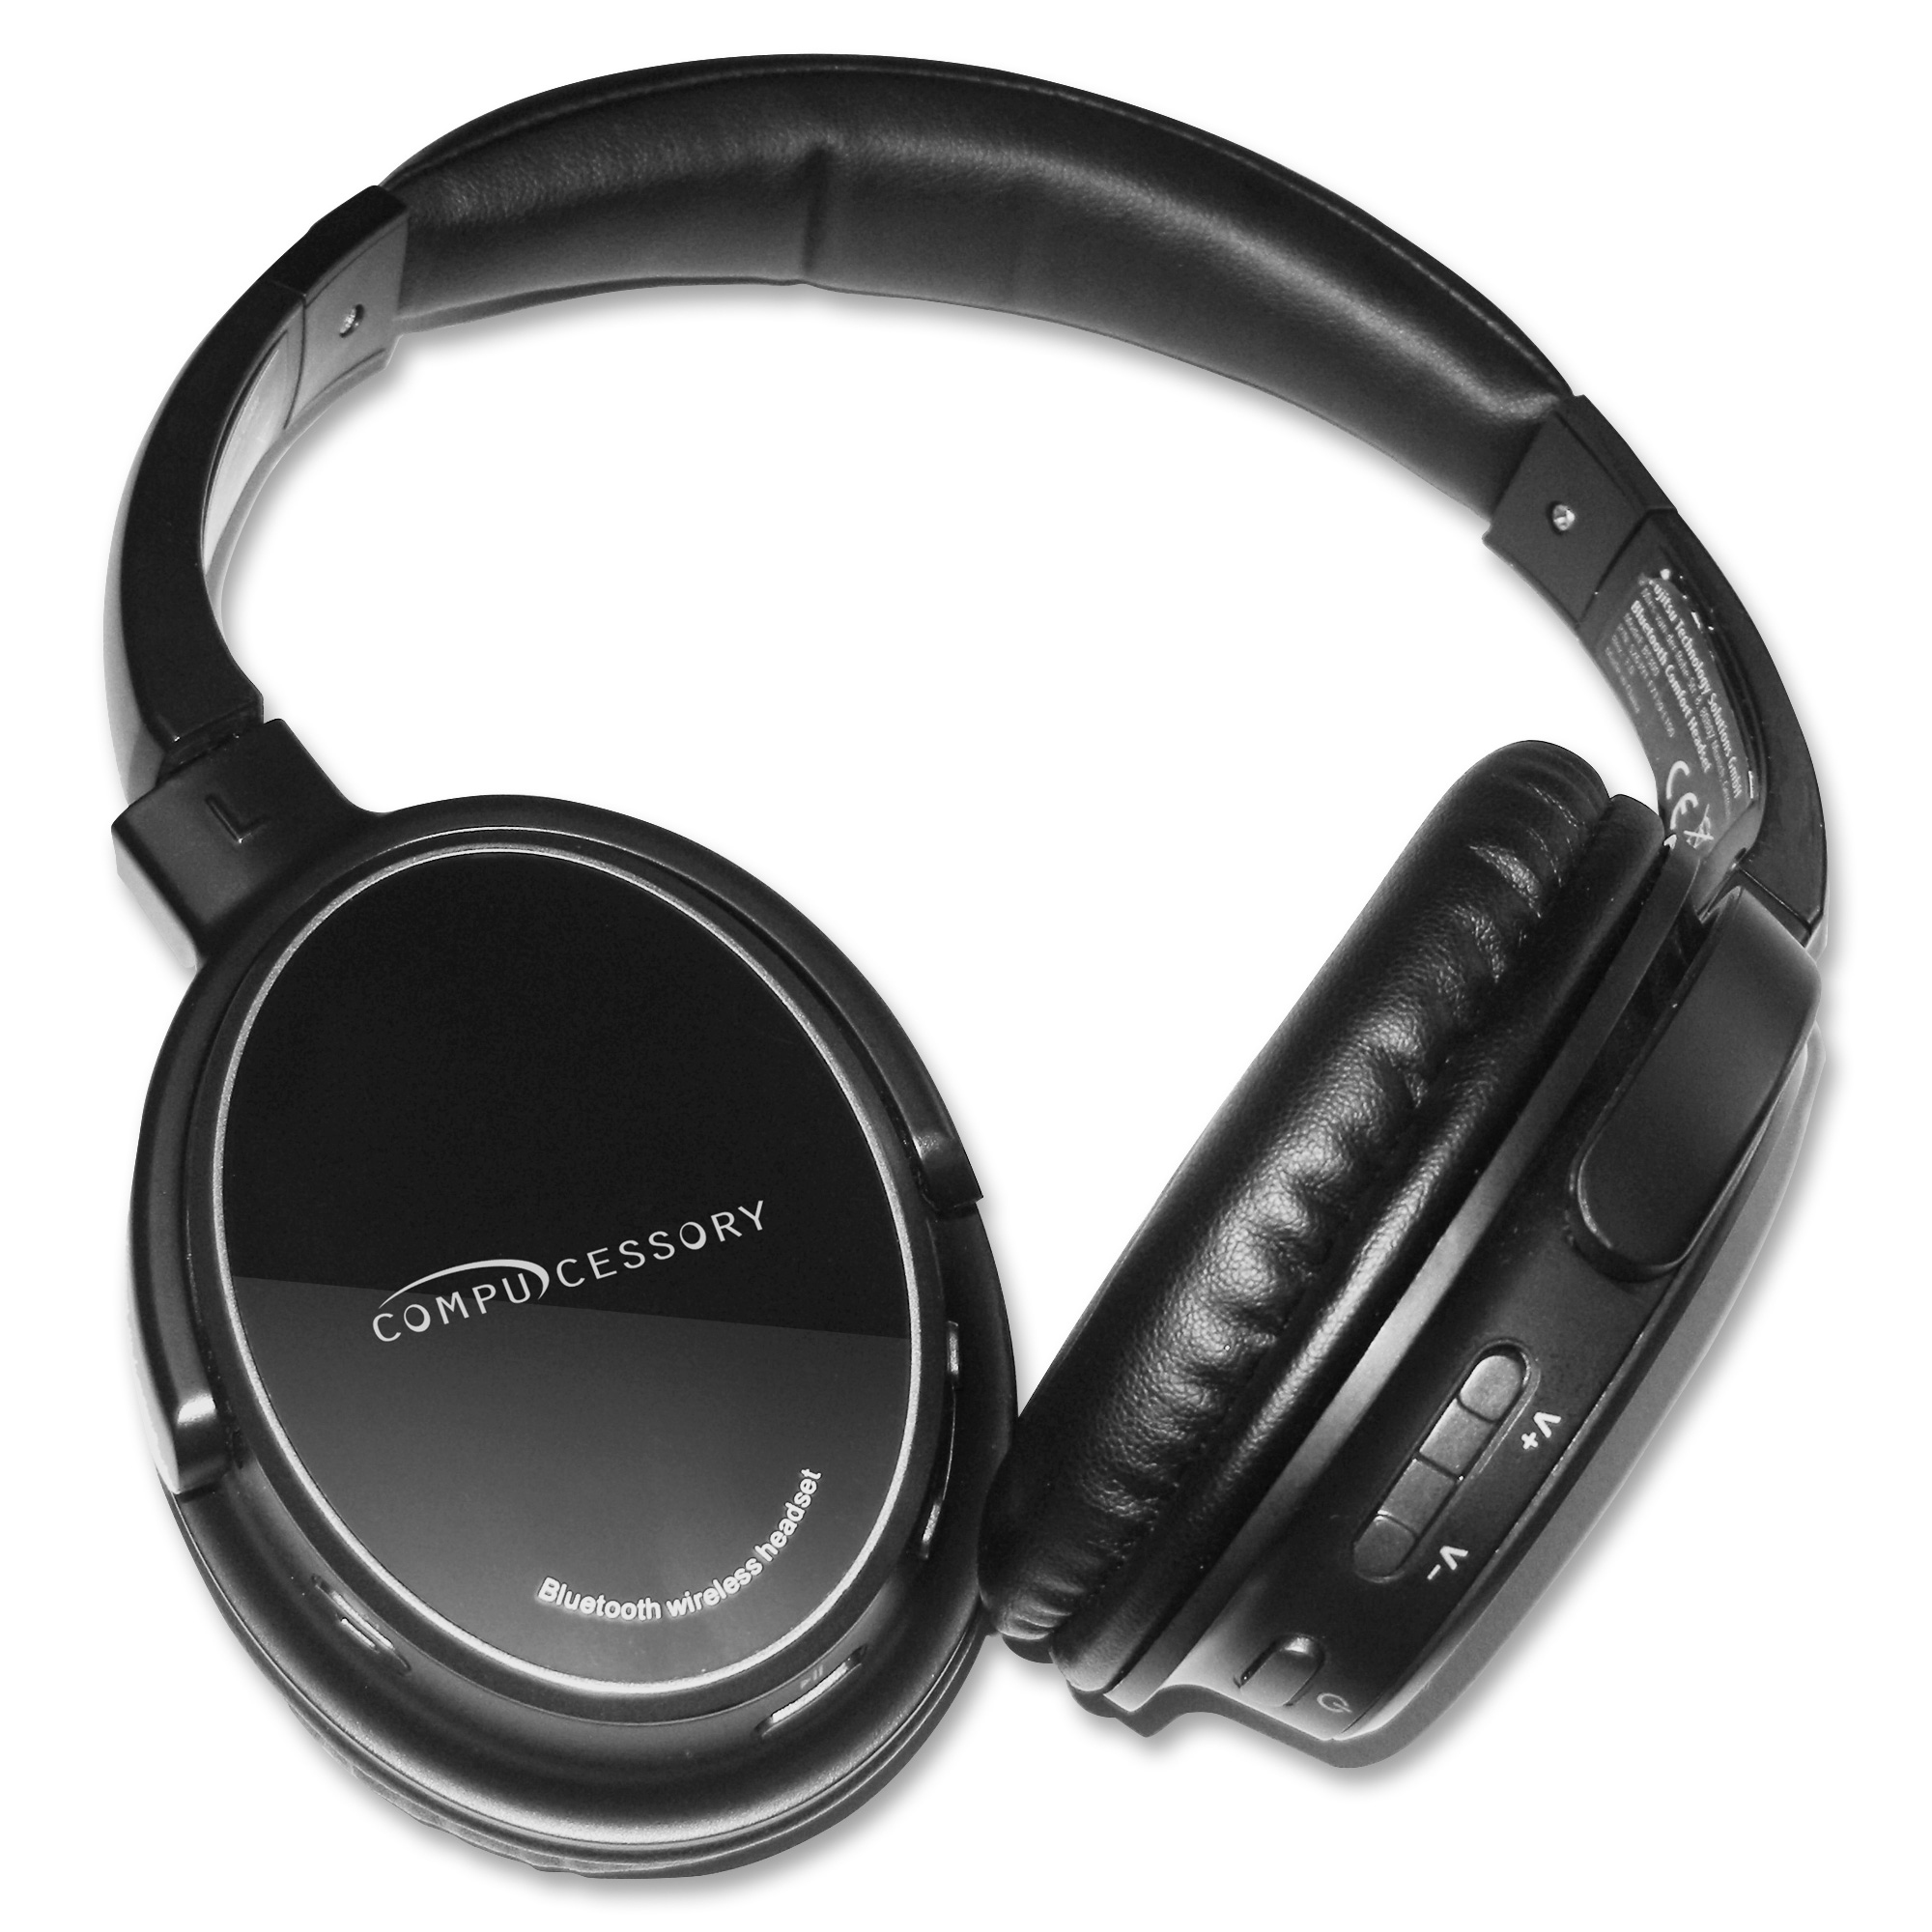 Compucessory, CCS28287, Bluetooth Headphone with Microphone, 1, Black,Silver